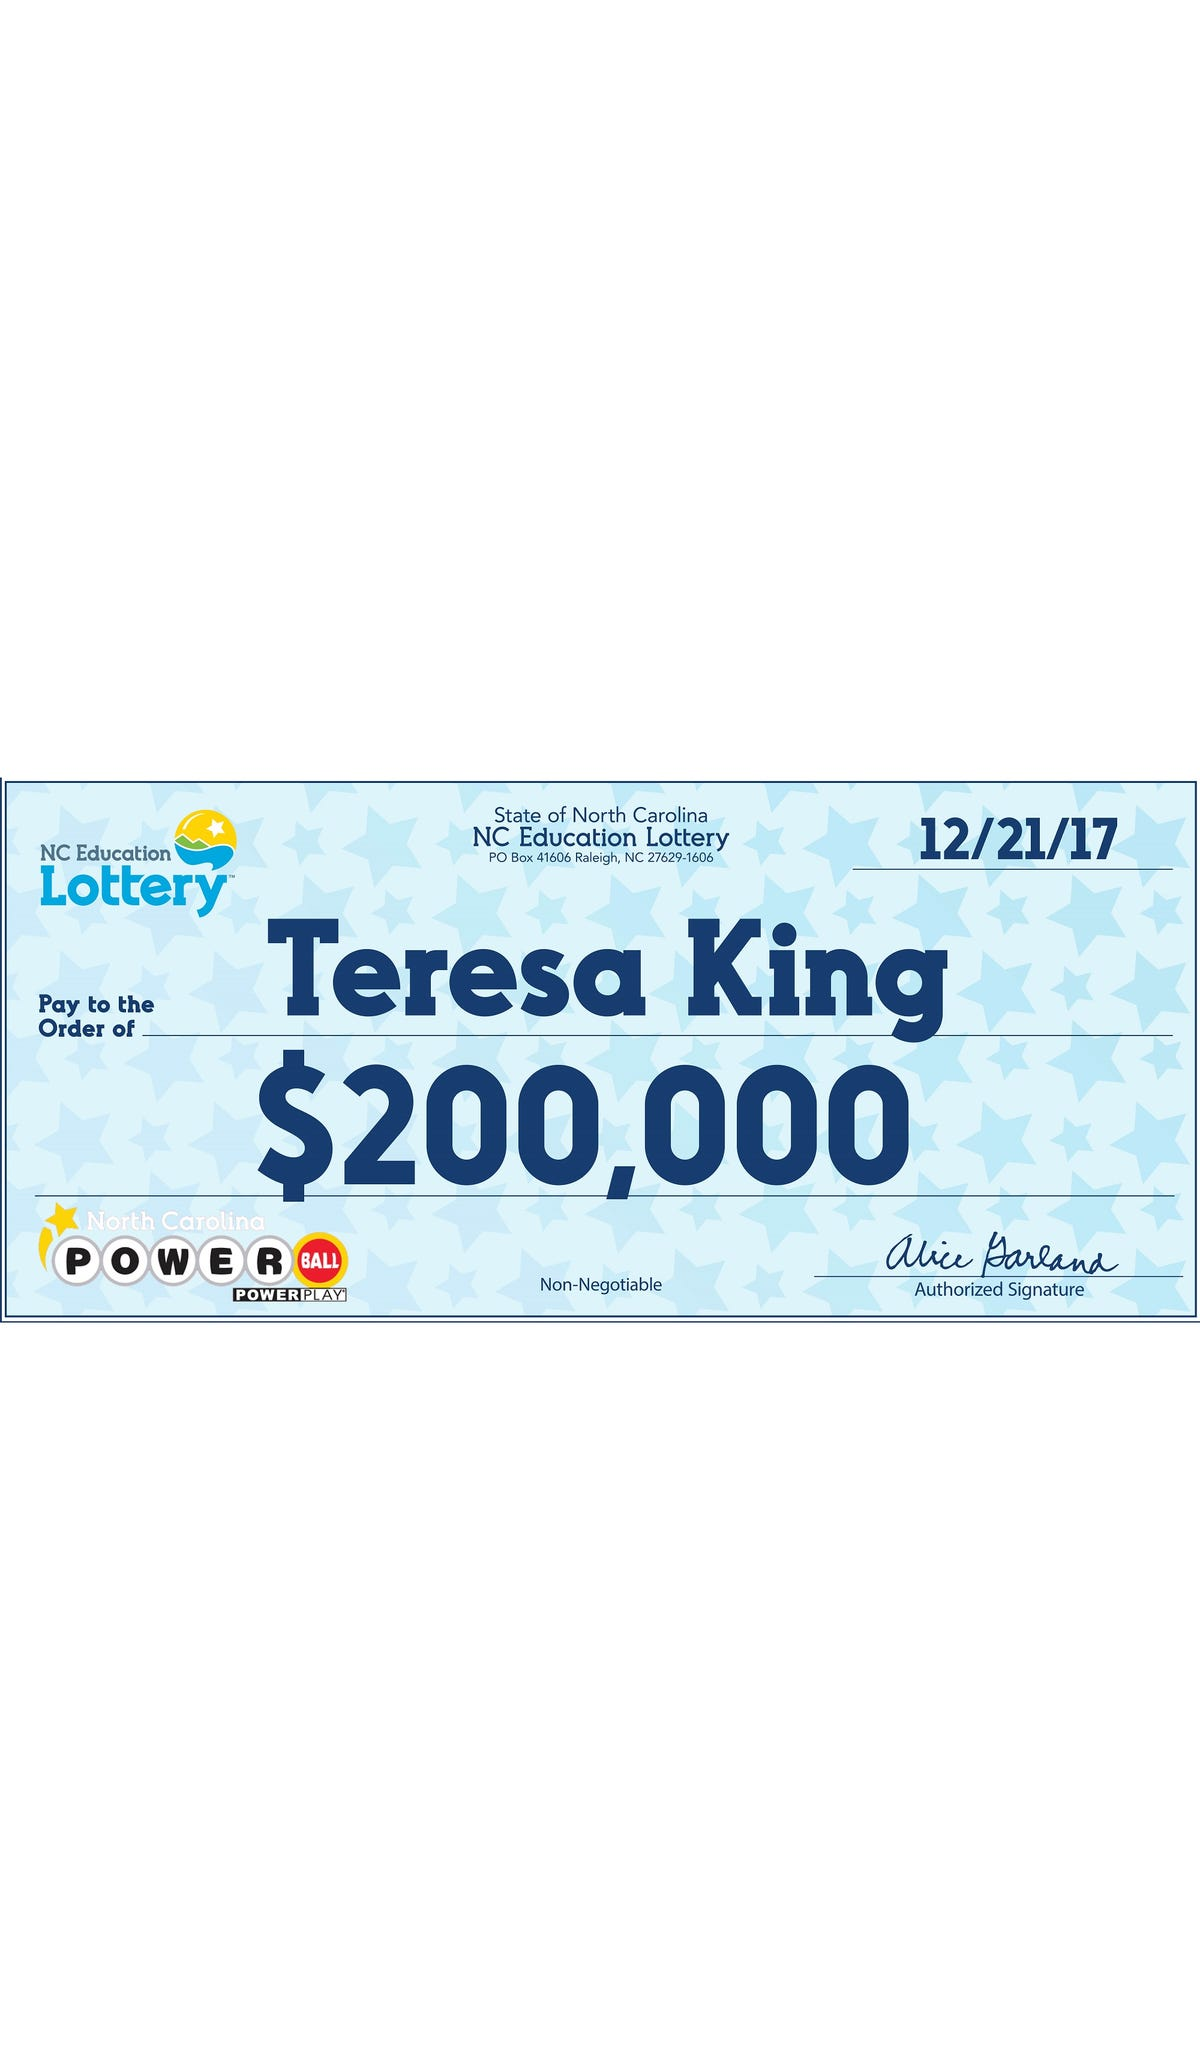 Christmas miracle': Fletcher woman wins $200K on old Powerball ticket